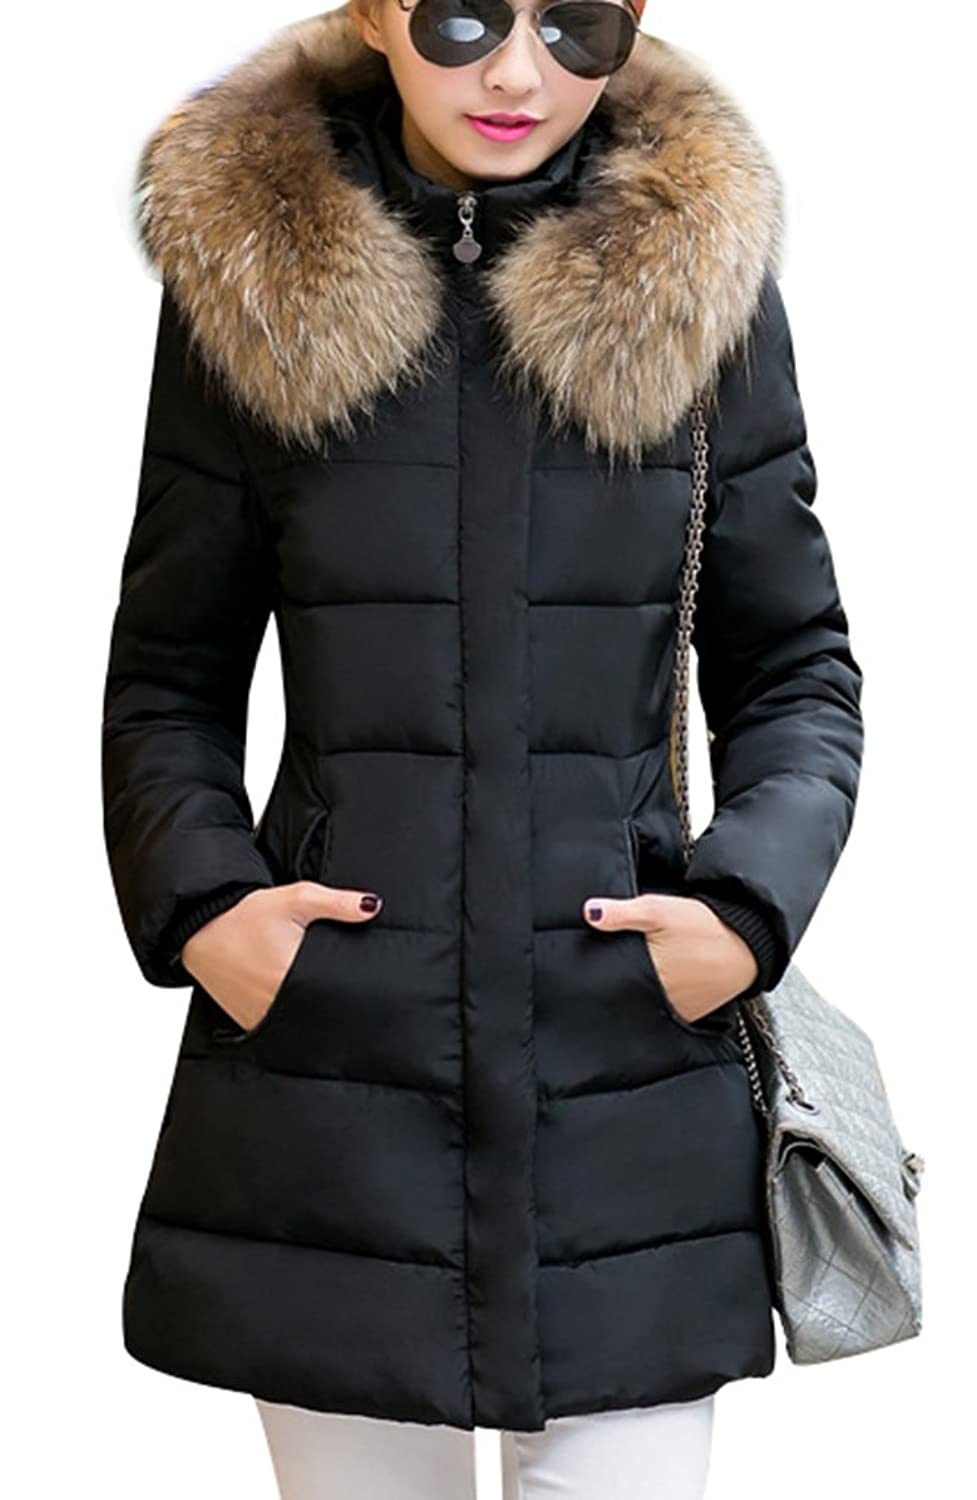 Yasong Women's Girl's Faux Fur Hooded Quilted Padded Parka Jacket Winter  Overcoat Puffer Coat Black UK 6: Amazon.co.uk: Clothing